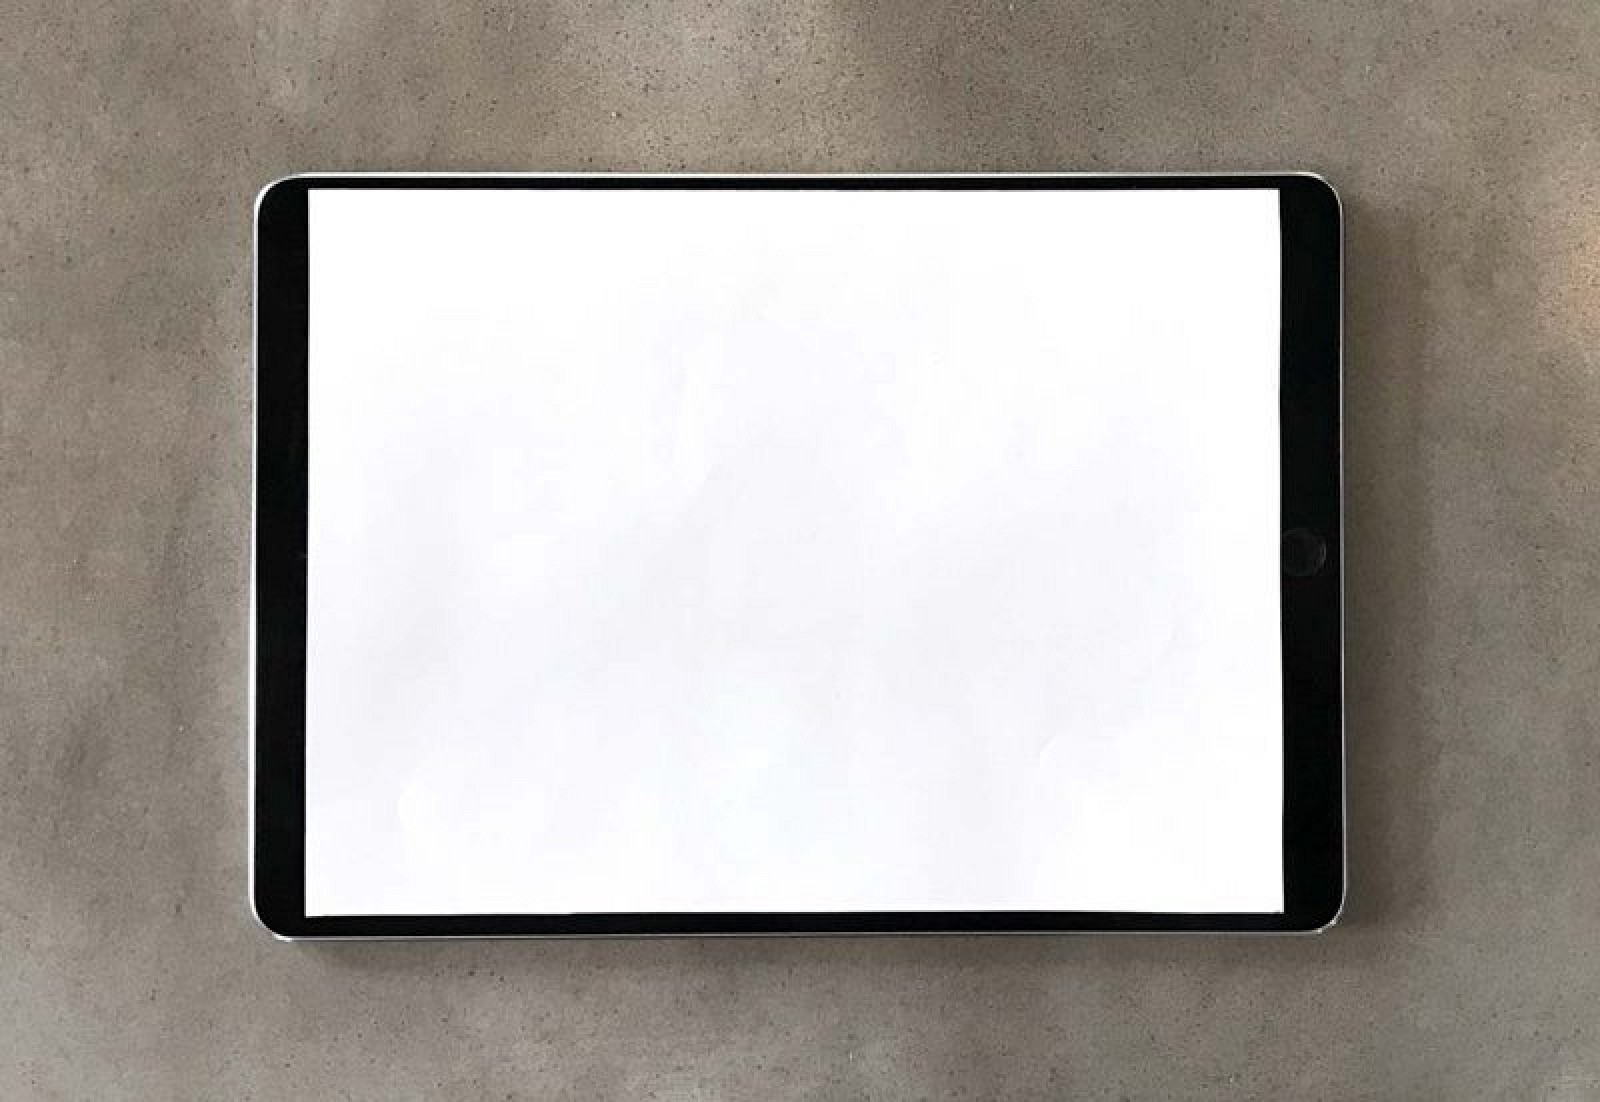 A 10.5-Inch iPad Pro Could Match the 12.9-Inch Model's Resolution and the iPad Mini's Pixel Density